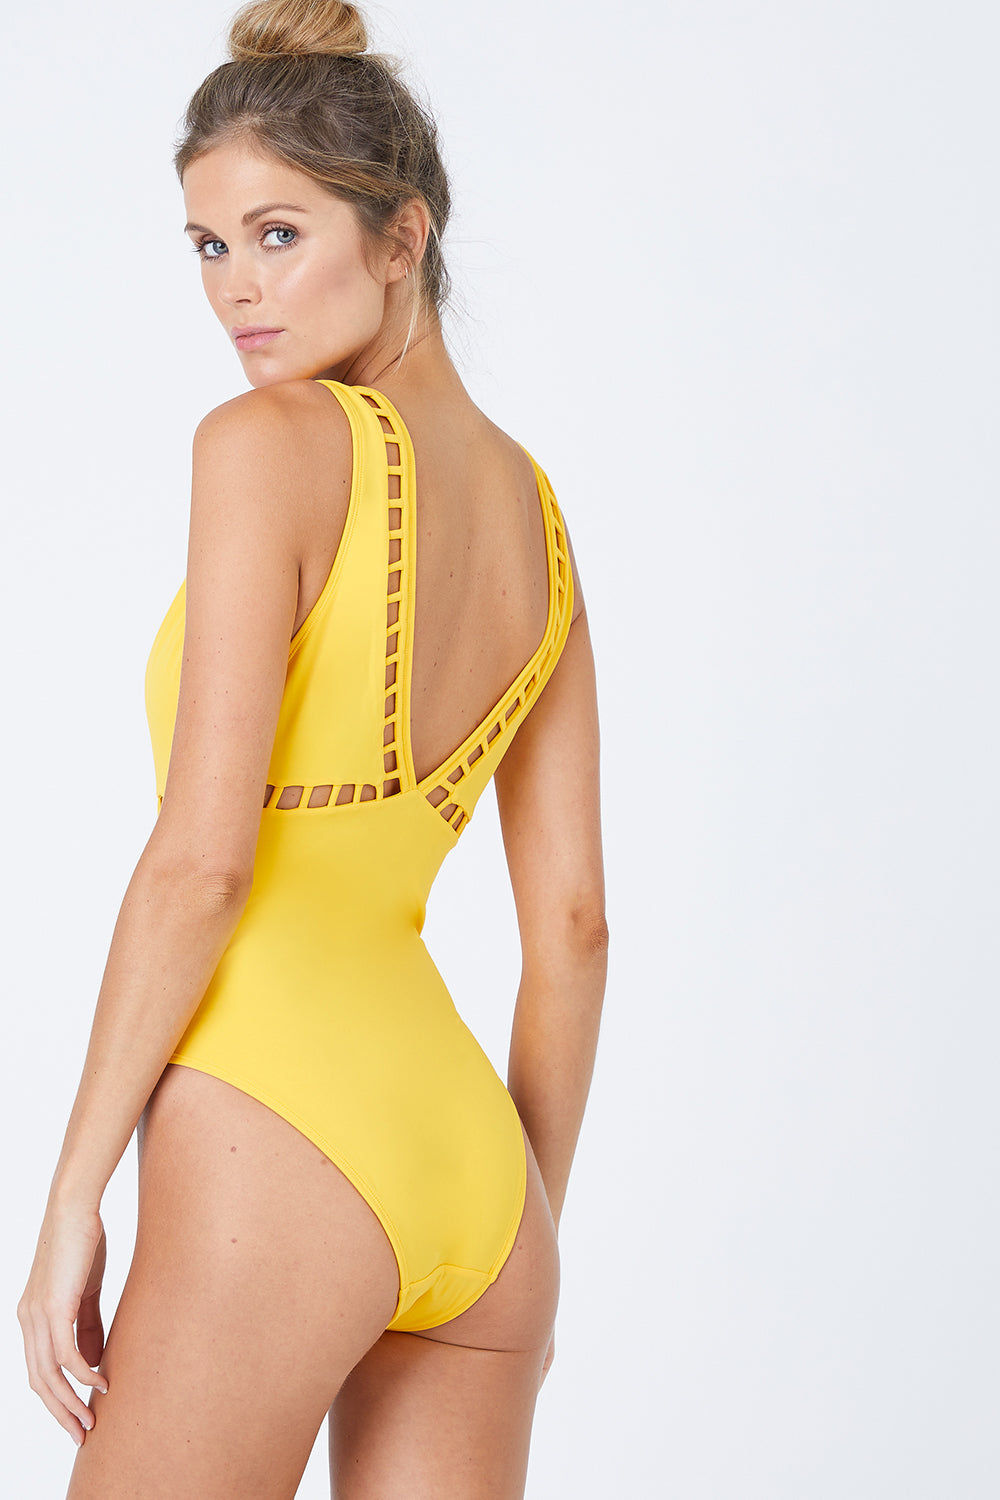 OYE SWIMWEAR Ela Plunge Cut Out High Cut One Piece Swimsuit - Yellow One Piece | Yellow| Oye Swimwear Ela Plunge Cut Out High Cut One Piece Swimsuit - Yellow Plunging V Neckline  Cut Out Pattern Detail  Thick Shoulder Straps  High Cut Leg  Moderate Coverage  80% Polyamide, 20%Lycra® Hand wash only Handmade in Istanbul, Turkey High quality Italian material Back View